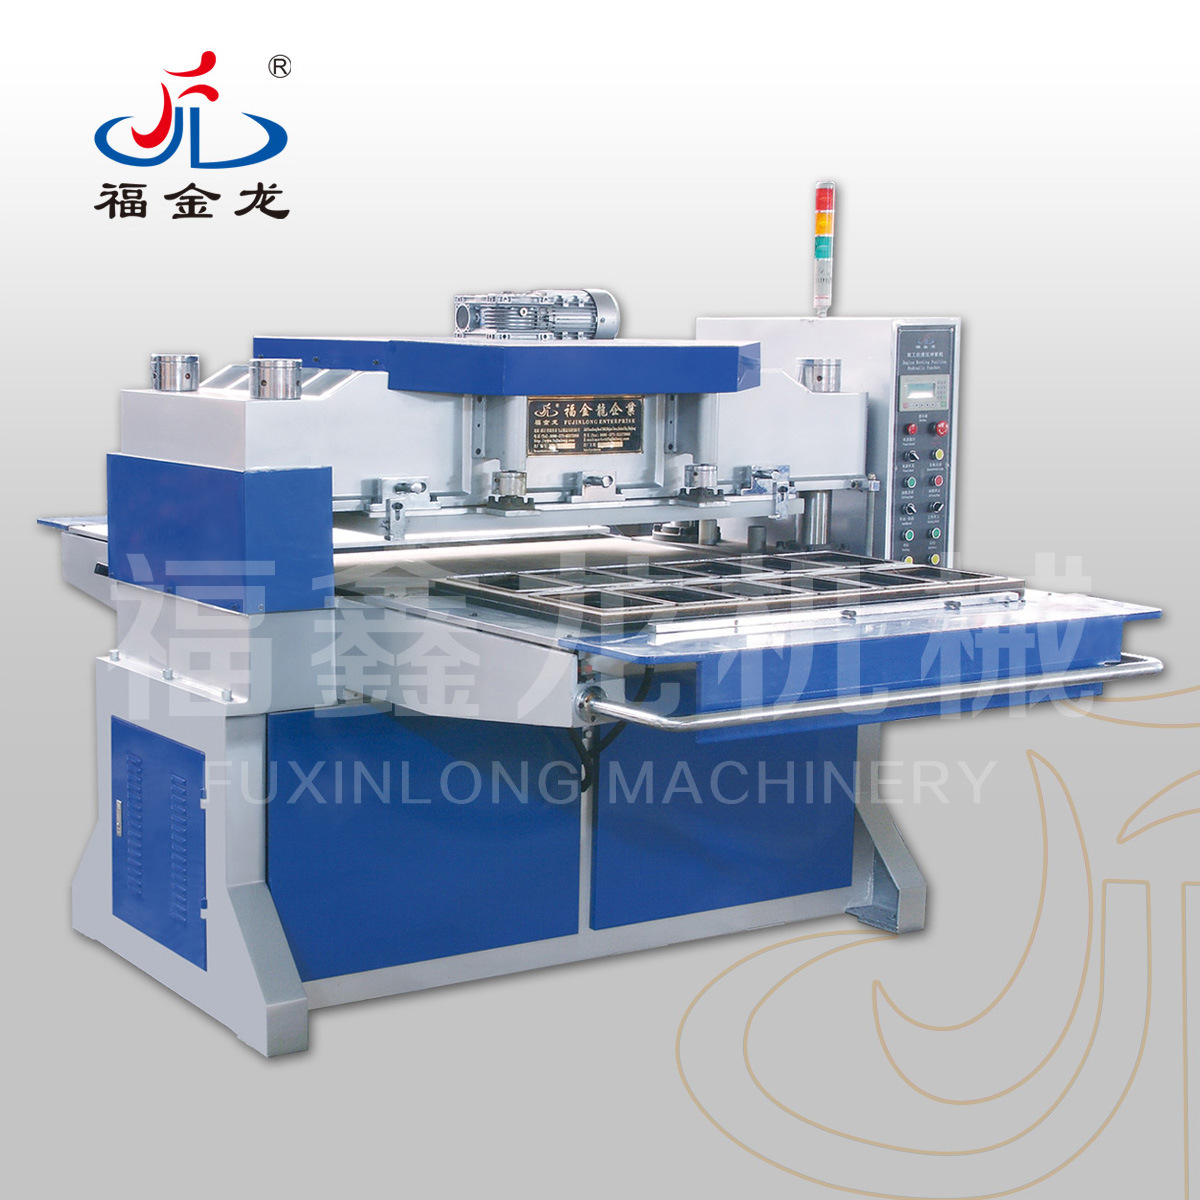 Duplex Working Position Hydraulic Puncher Machine